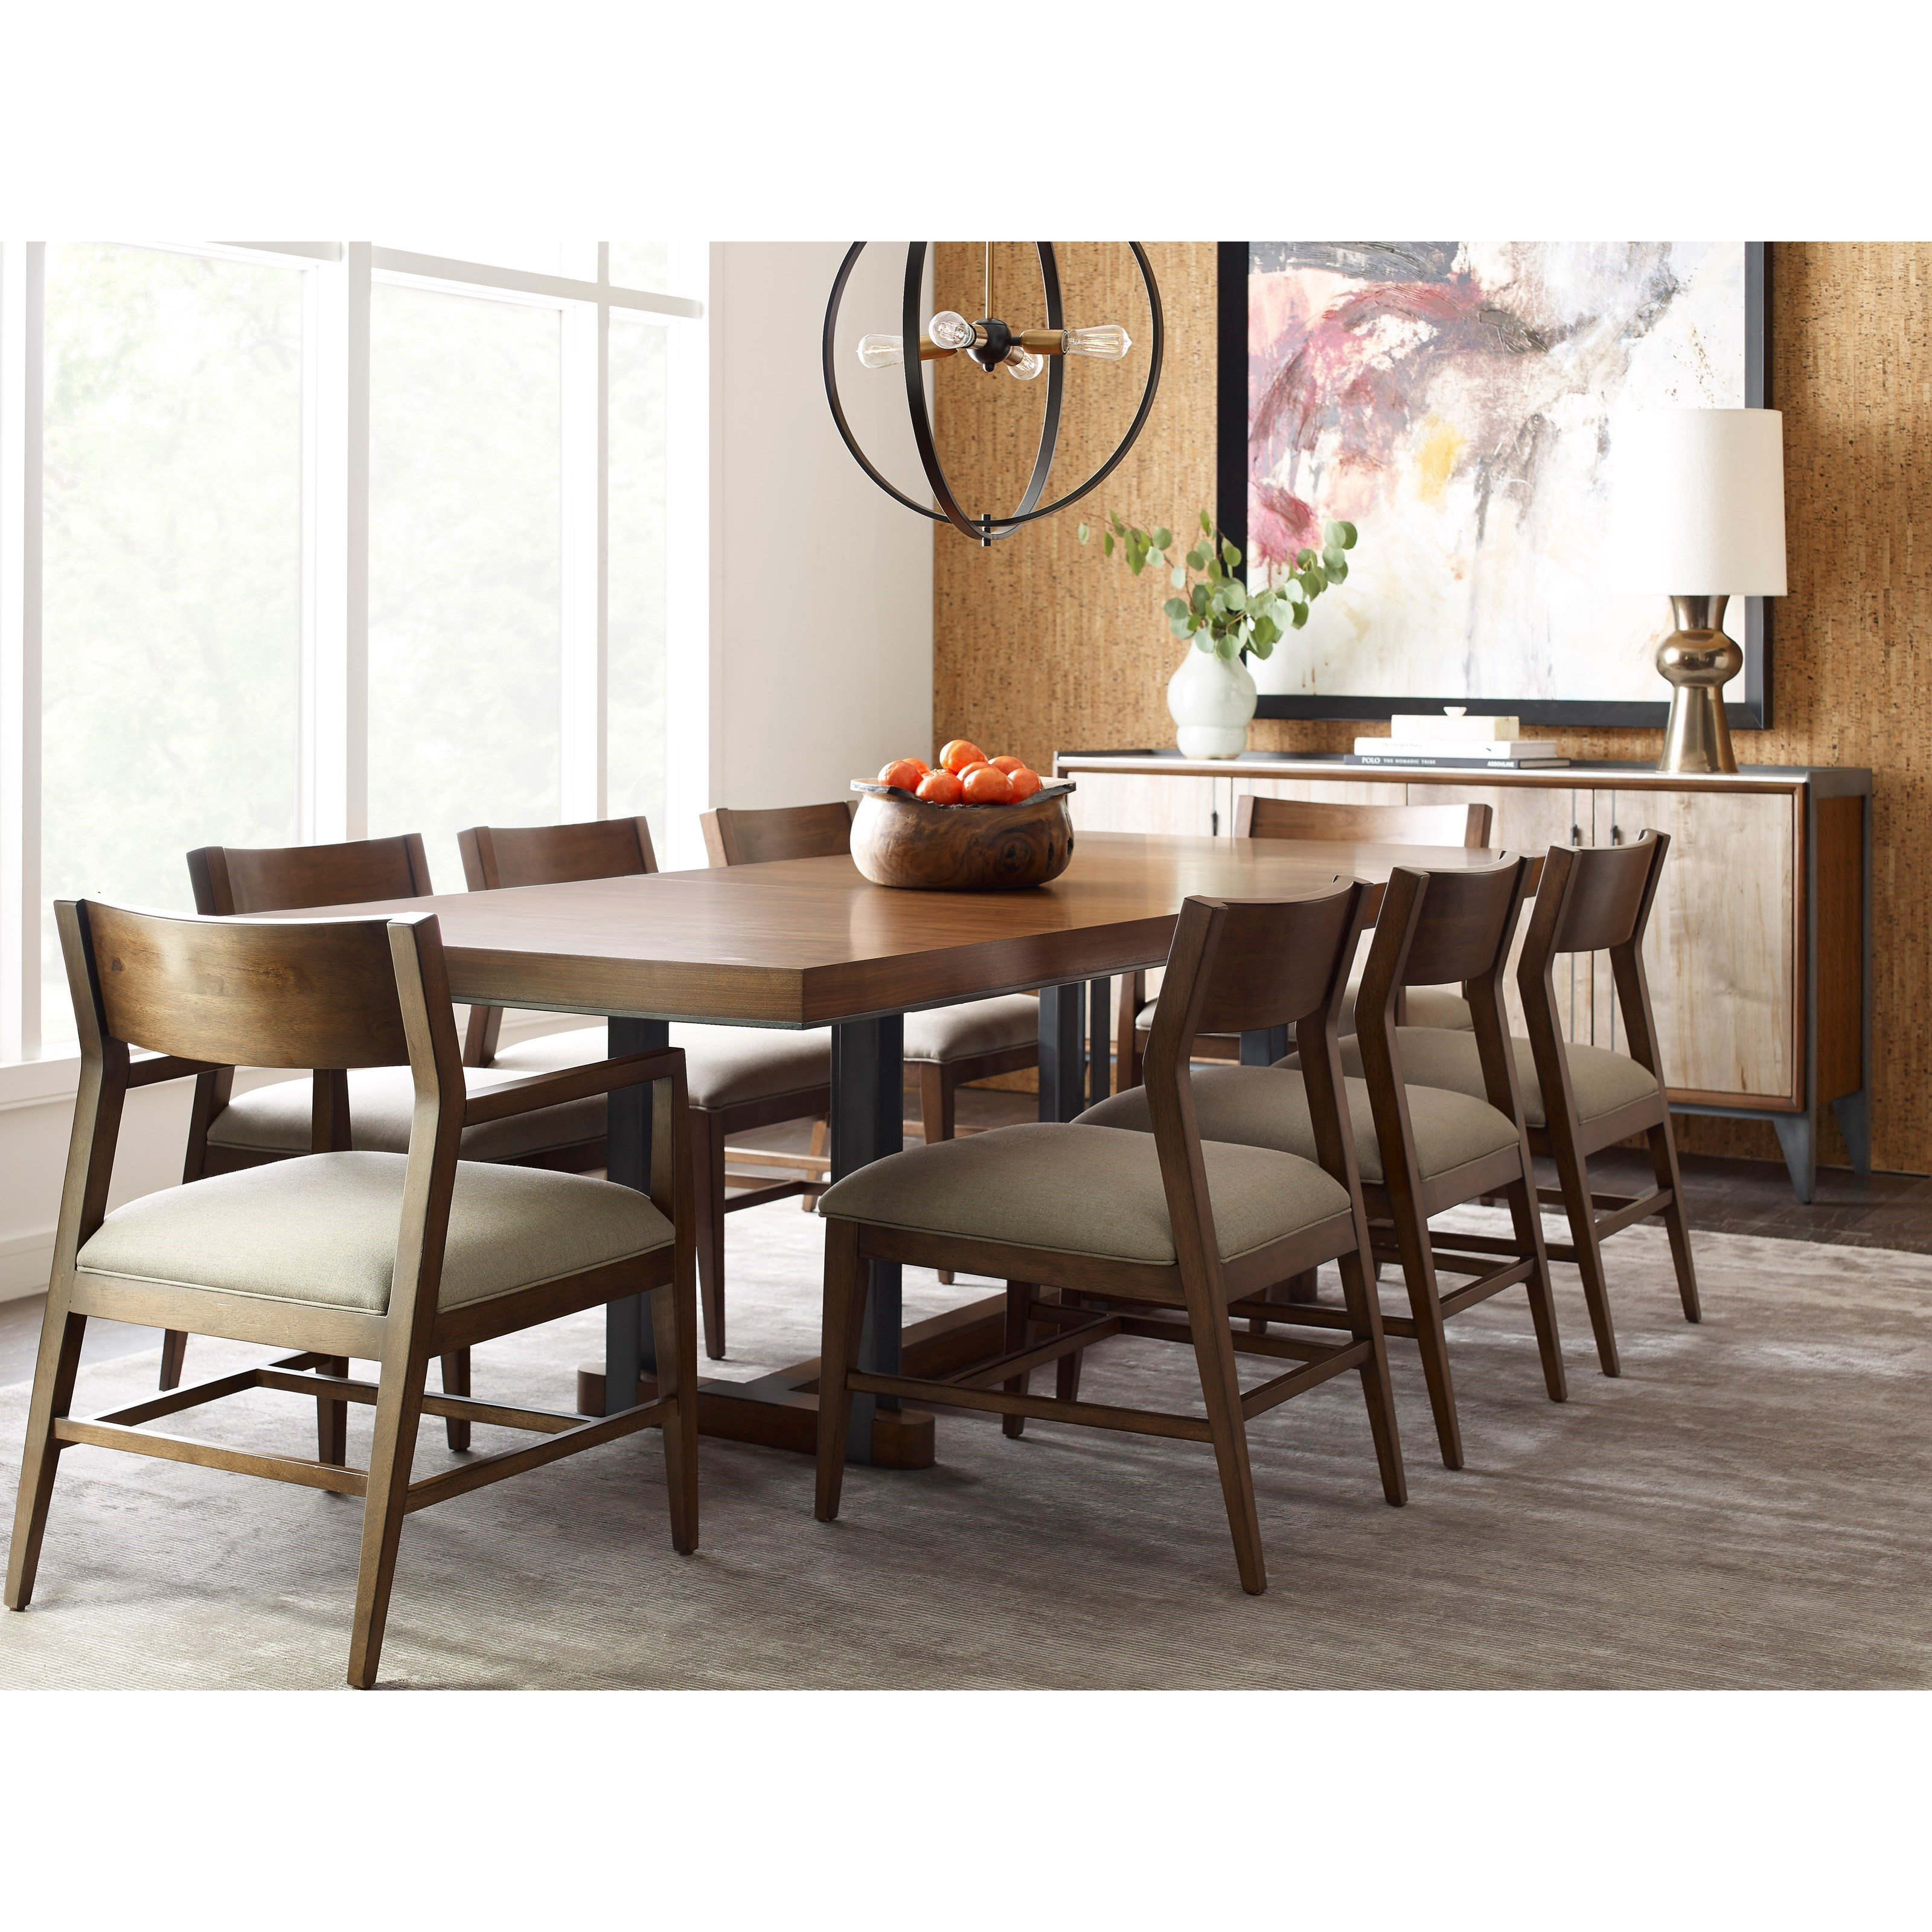 American Drew Modern Synergy Contemporary Formal Dining Room Group With  Rectangular Table